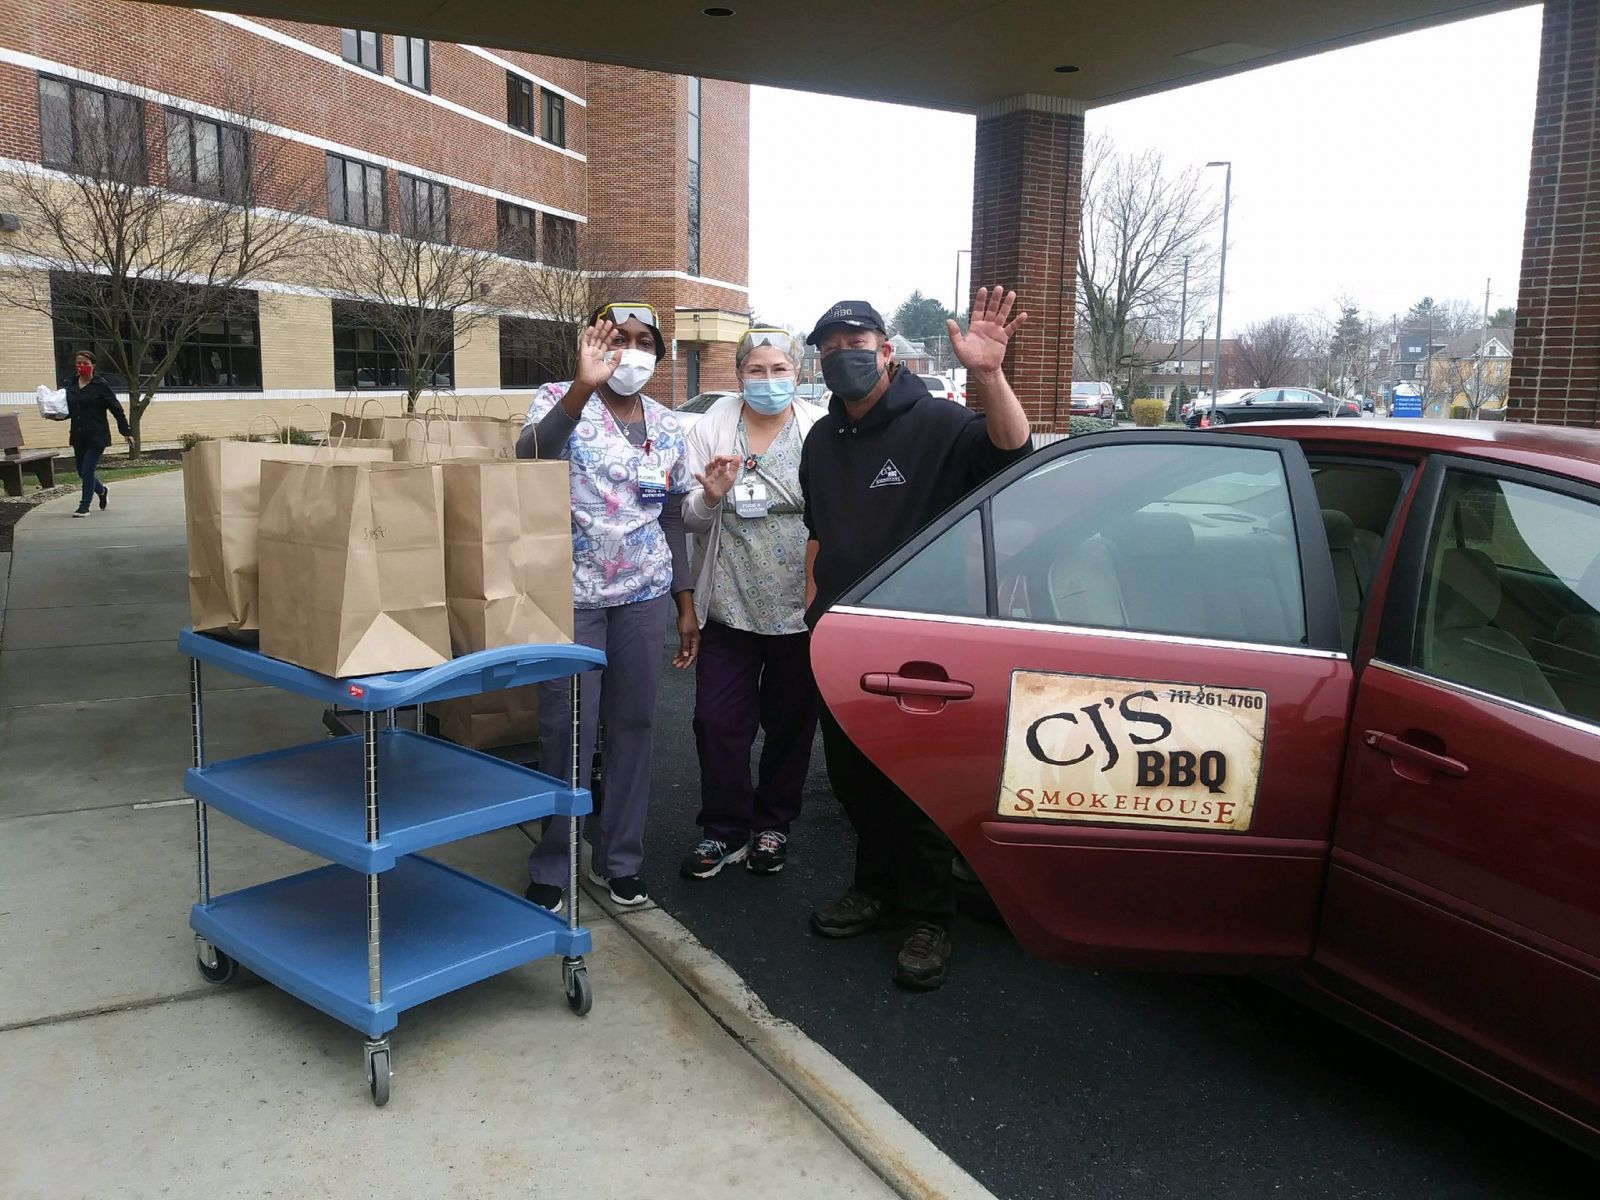 Jim Frey from CJ's BBQ Smokehouse drops off meals donated by Franklin County employees to health care workers at Chambersburg Hospital.  Photo by: Sharon Berbert